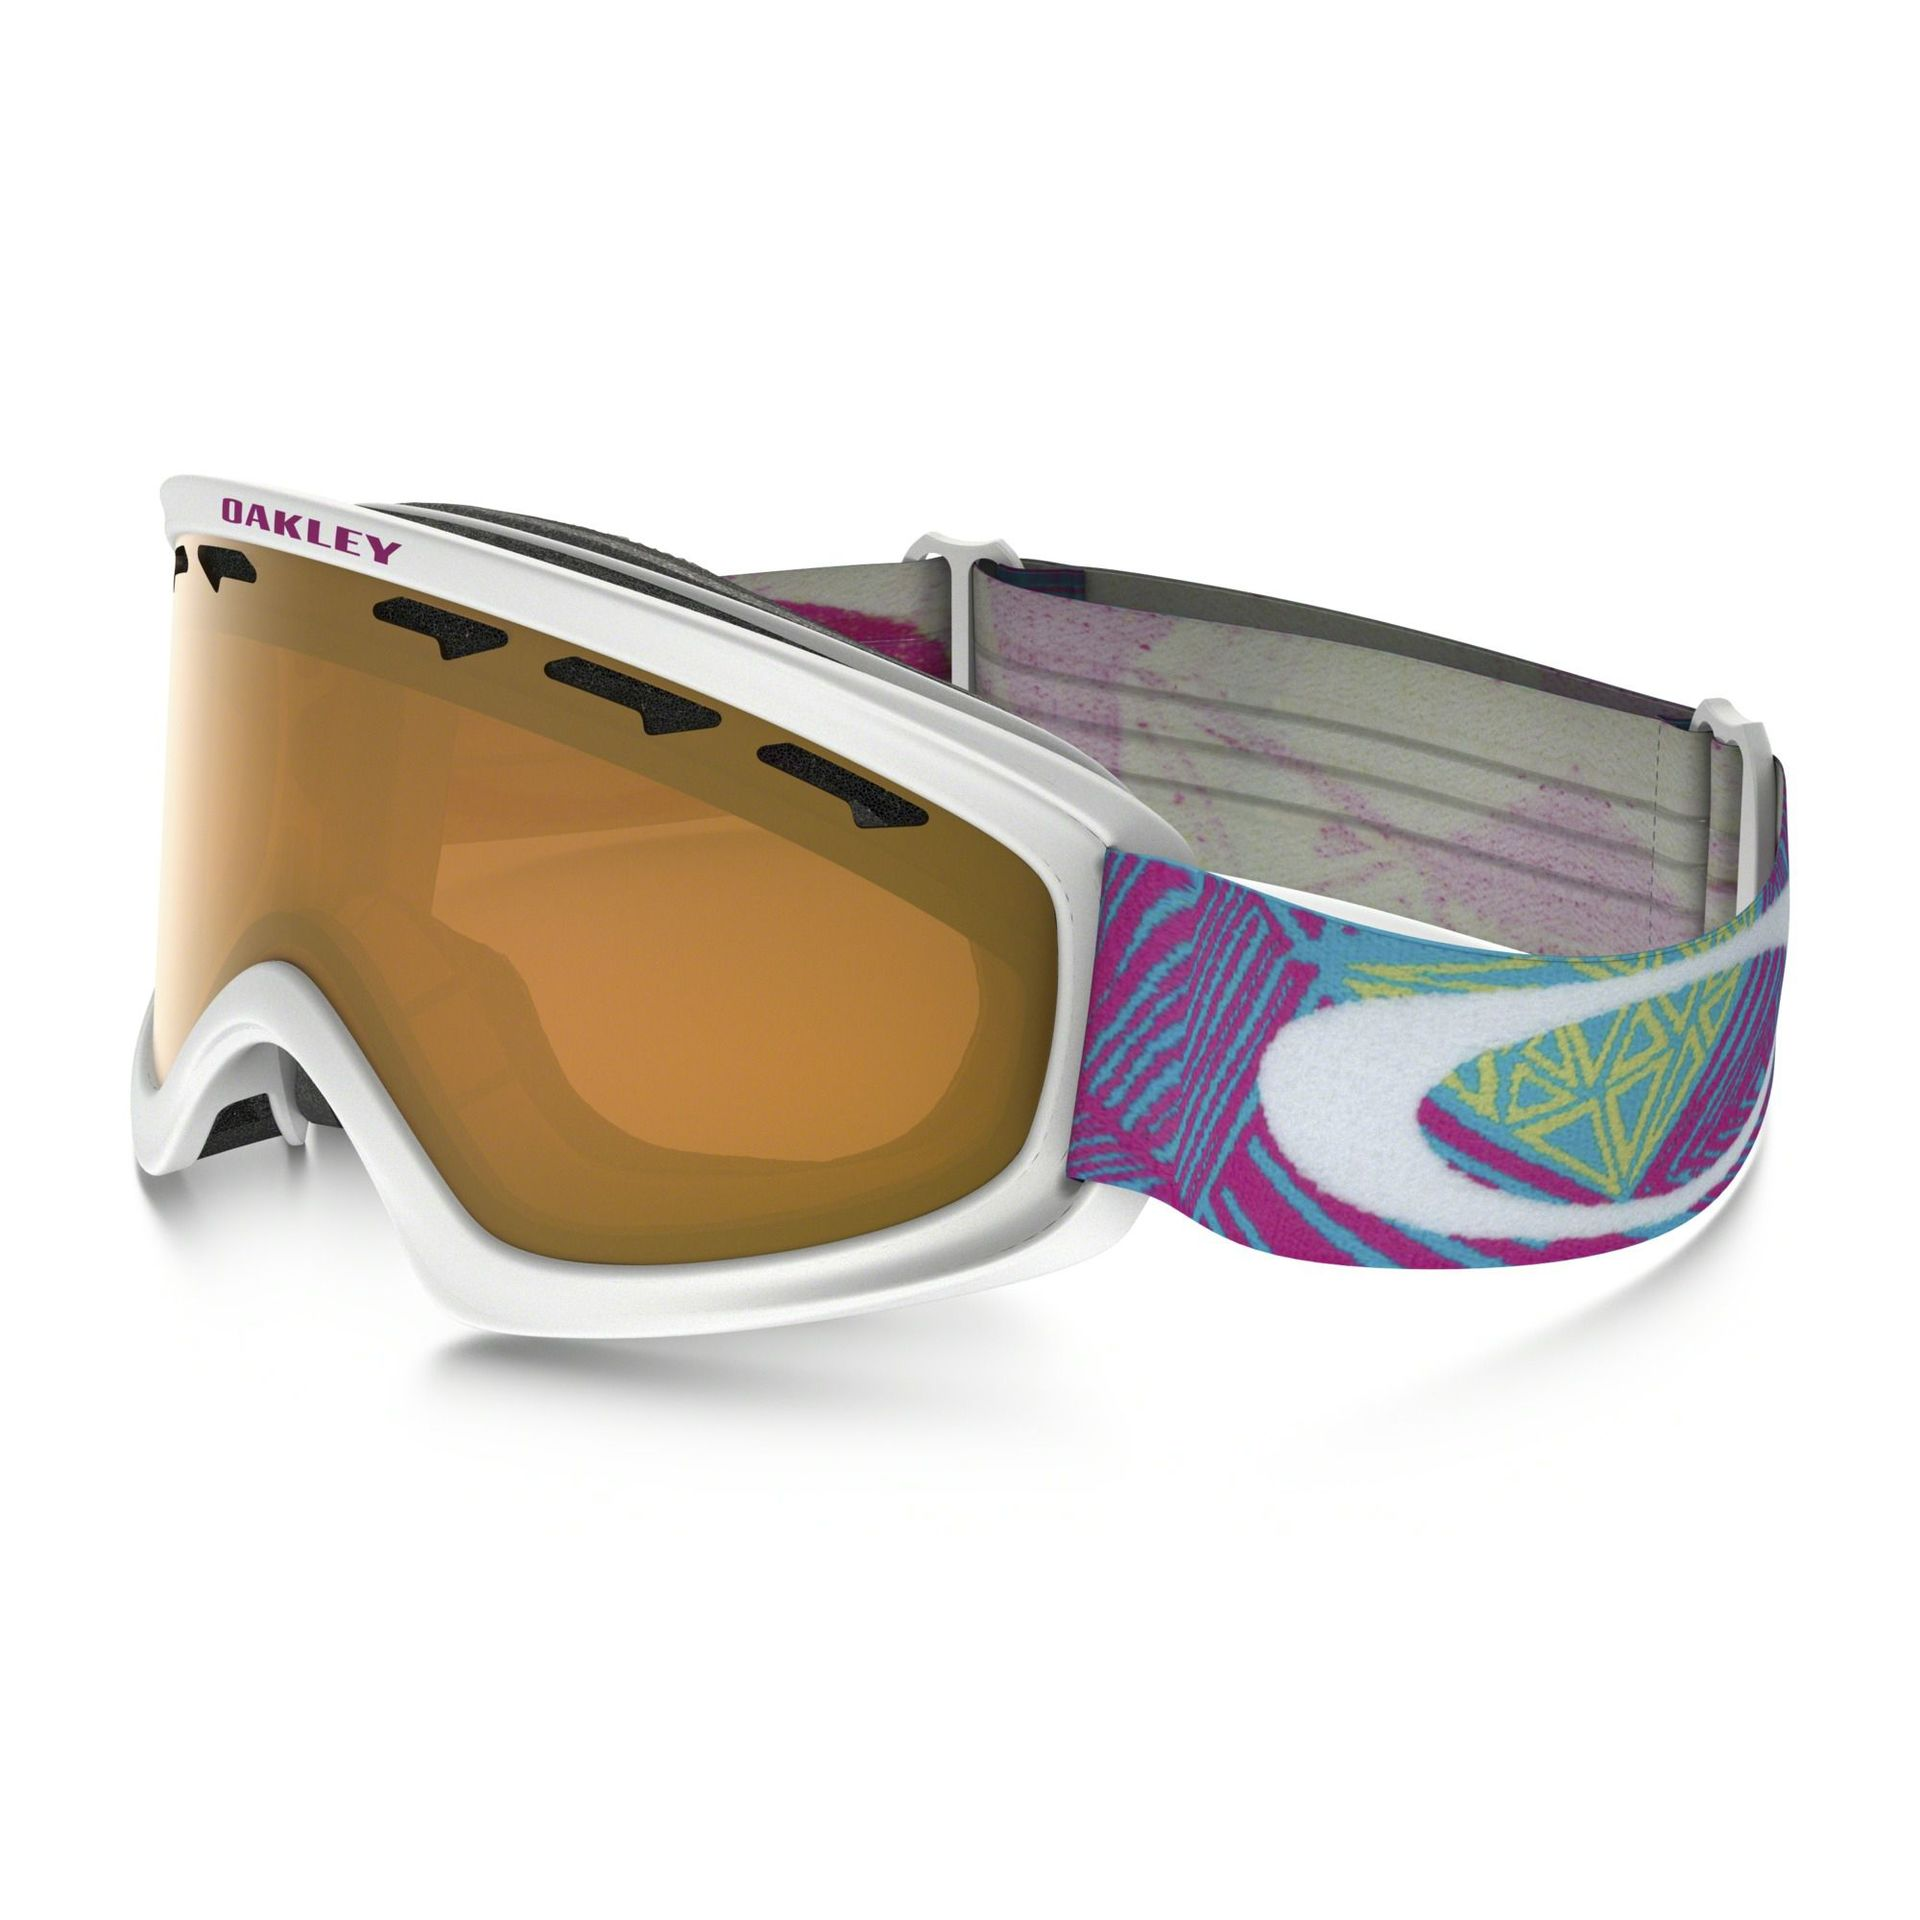 GOGLE OAKLEY O2 XS GEO CHAOS NEON PINK PERSIMMON